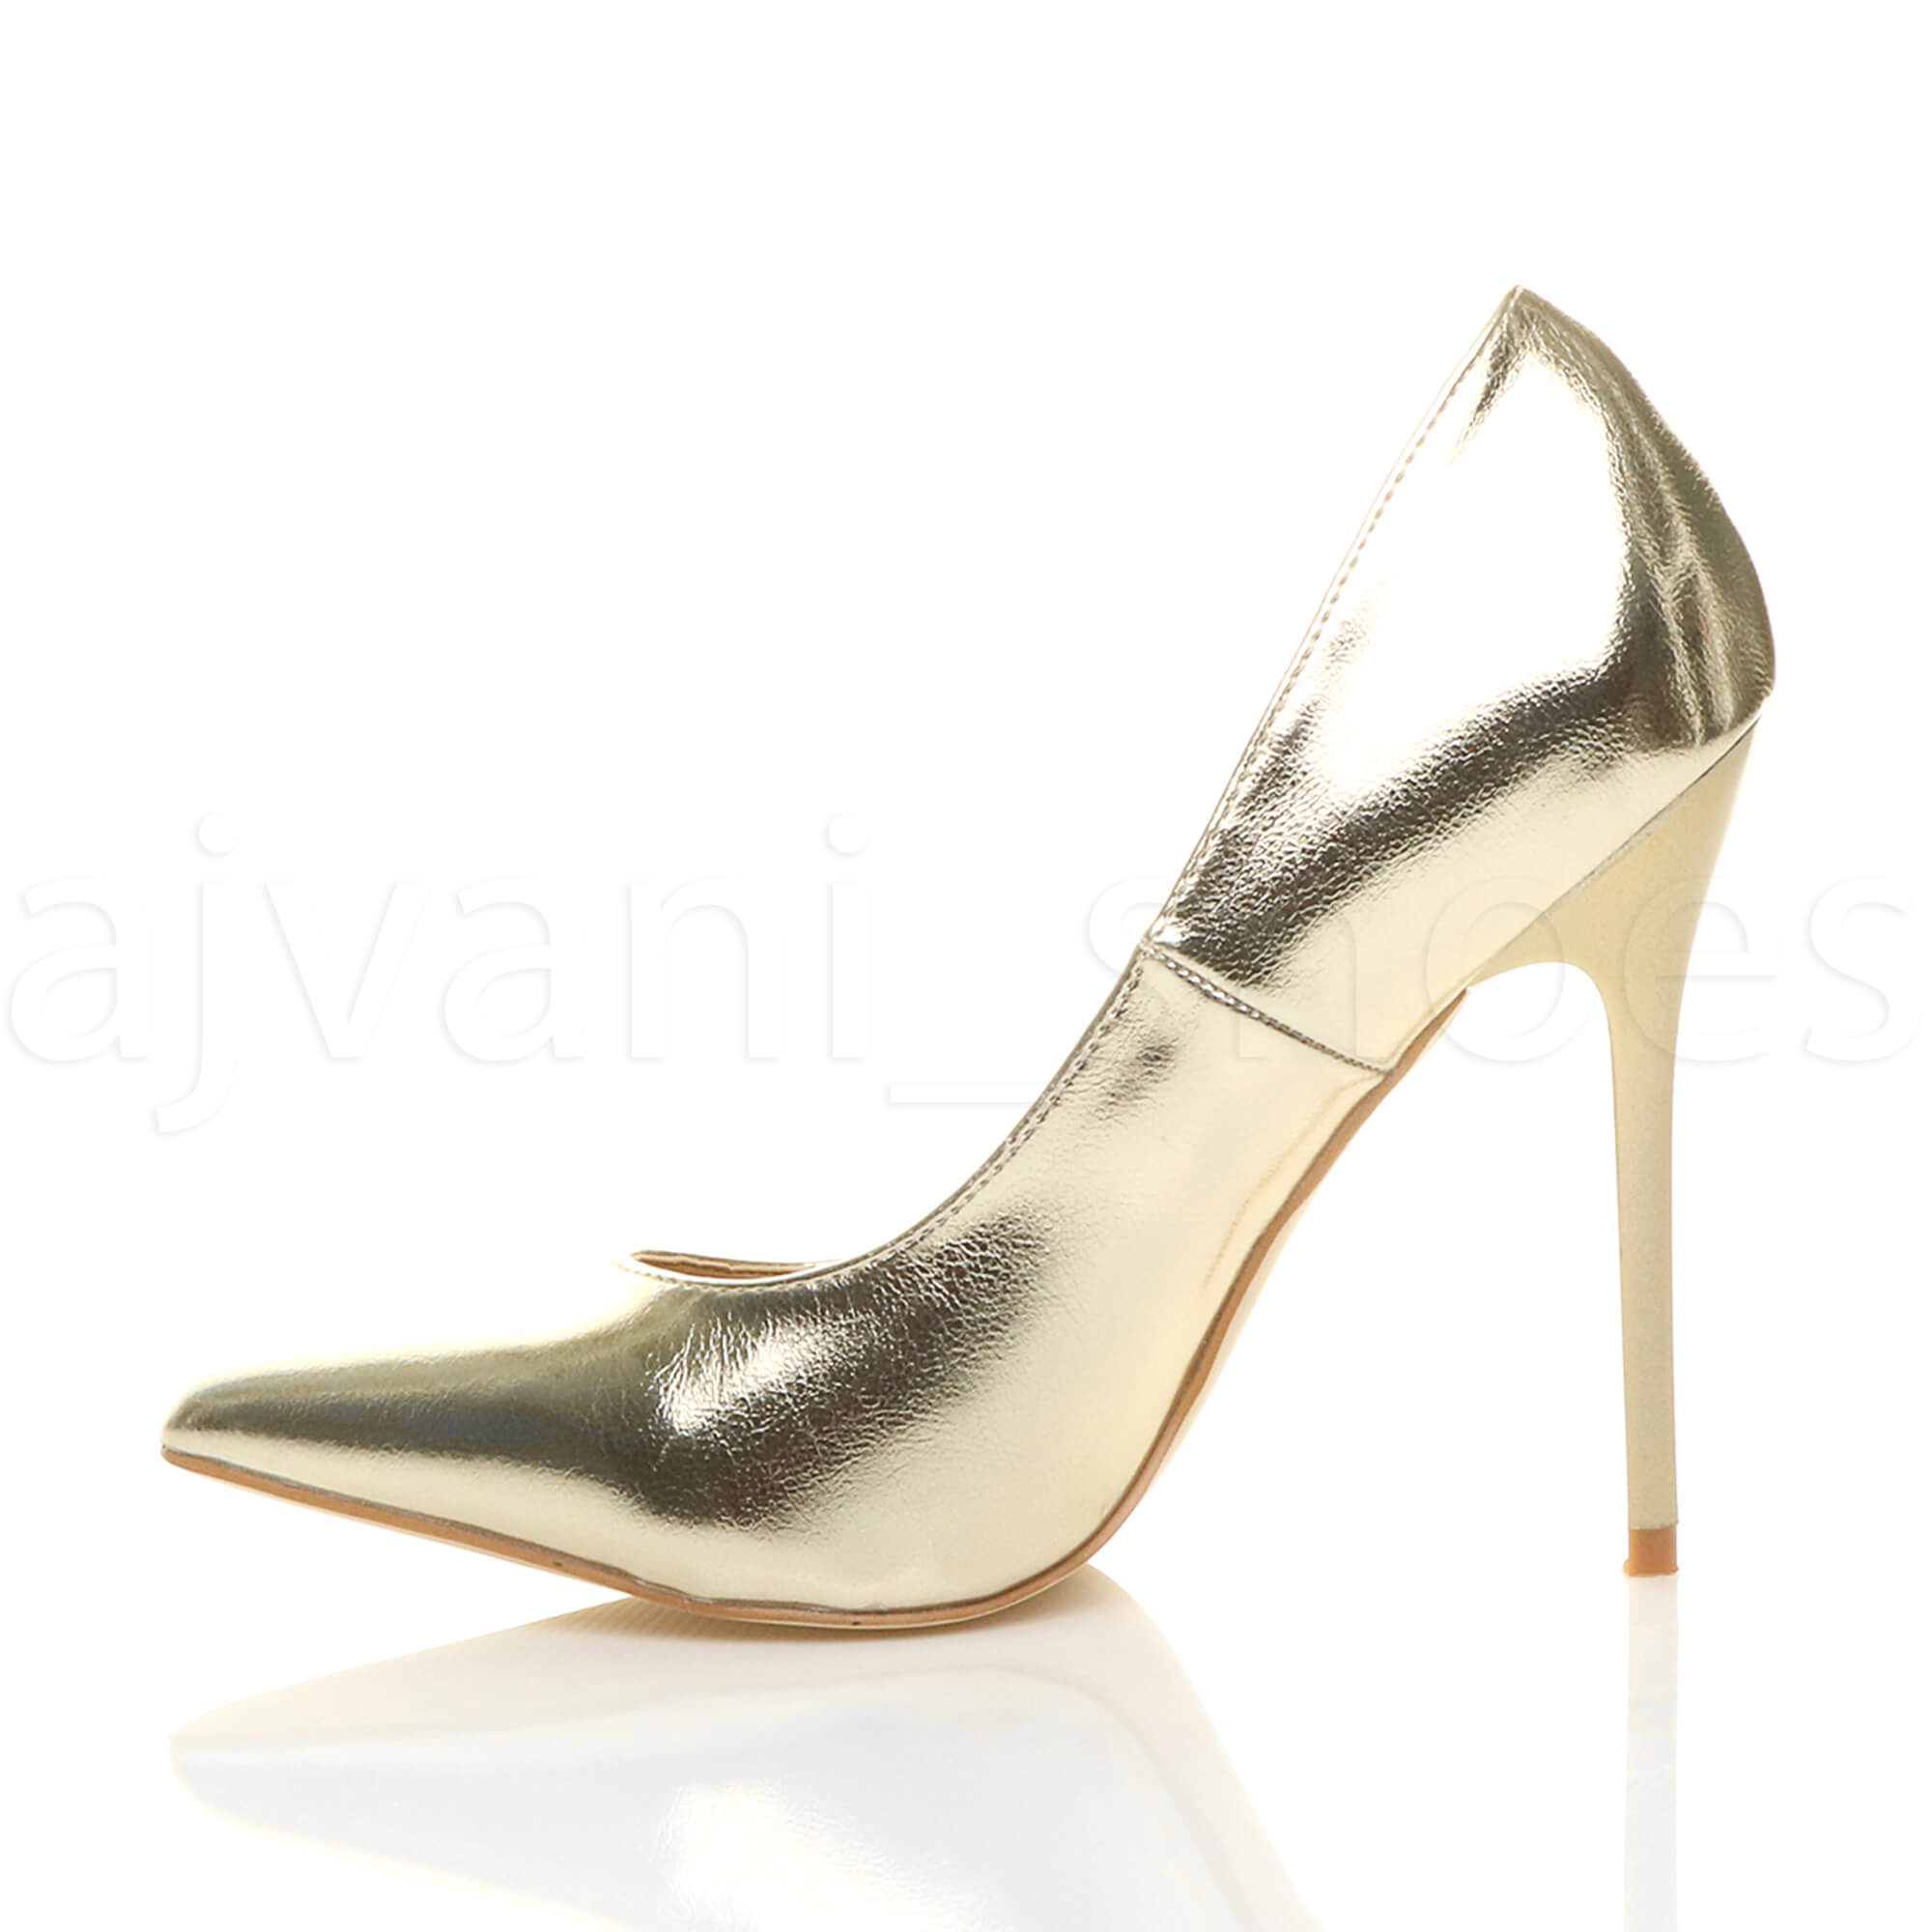 WOMENS-LADIES-HIGH-HEEL-POINTED-CONTRAST-COURT-SMART-PARTY-WORK-SHOES-PUMPS-SIZE thumbnail 67